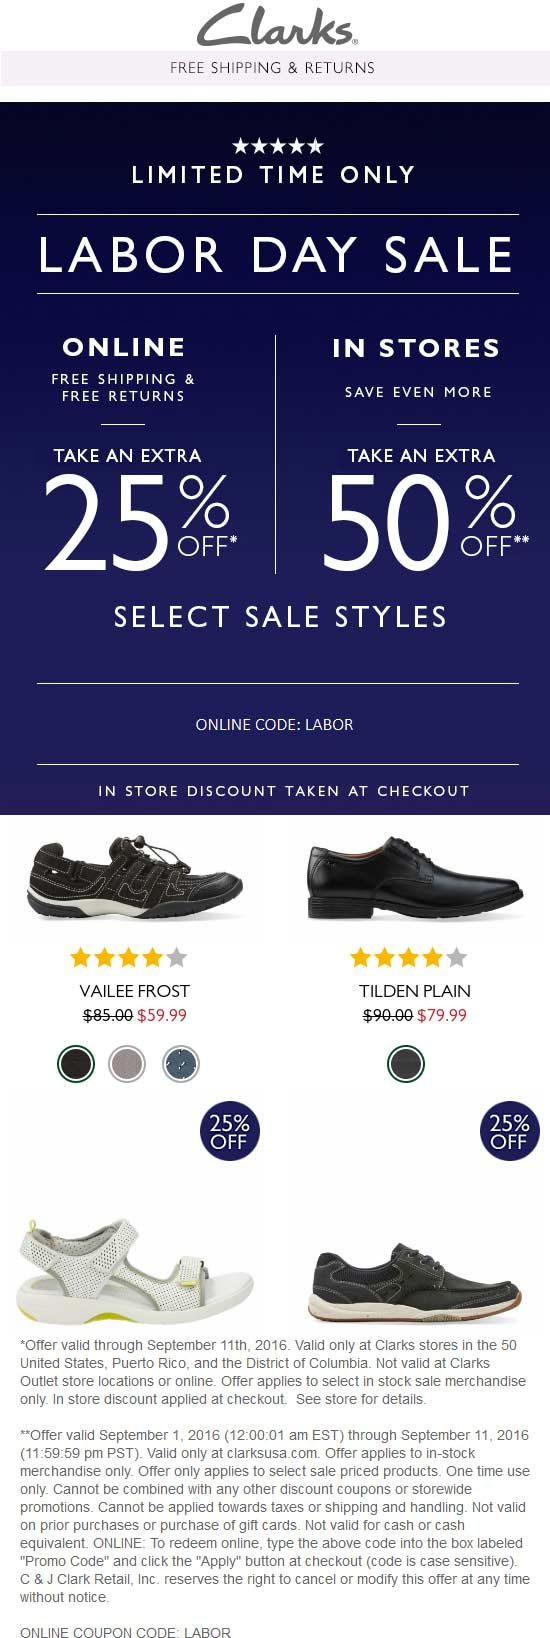 Clarks Coupon March 2017 Extra 50% off at Clarks, or 25% online via promo code LABOR